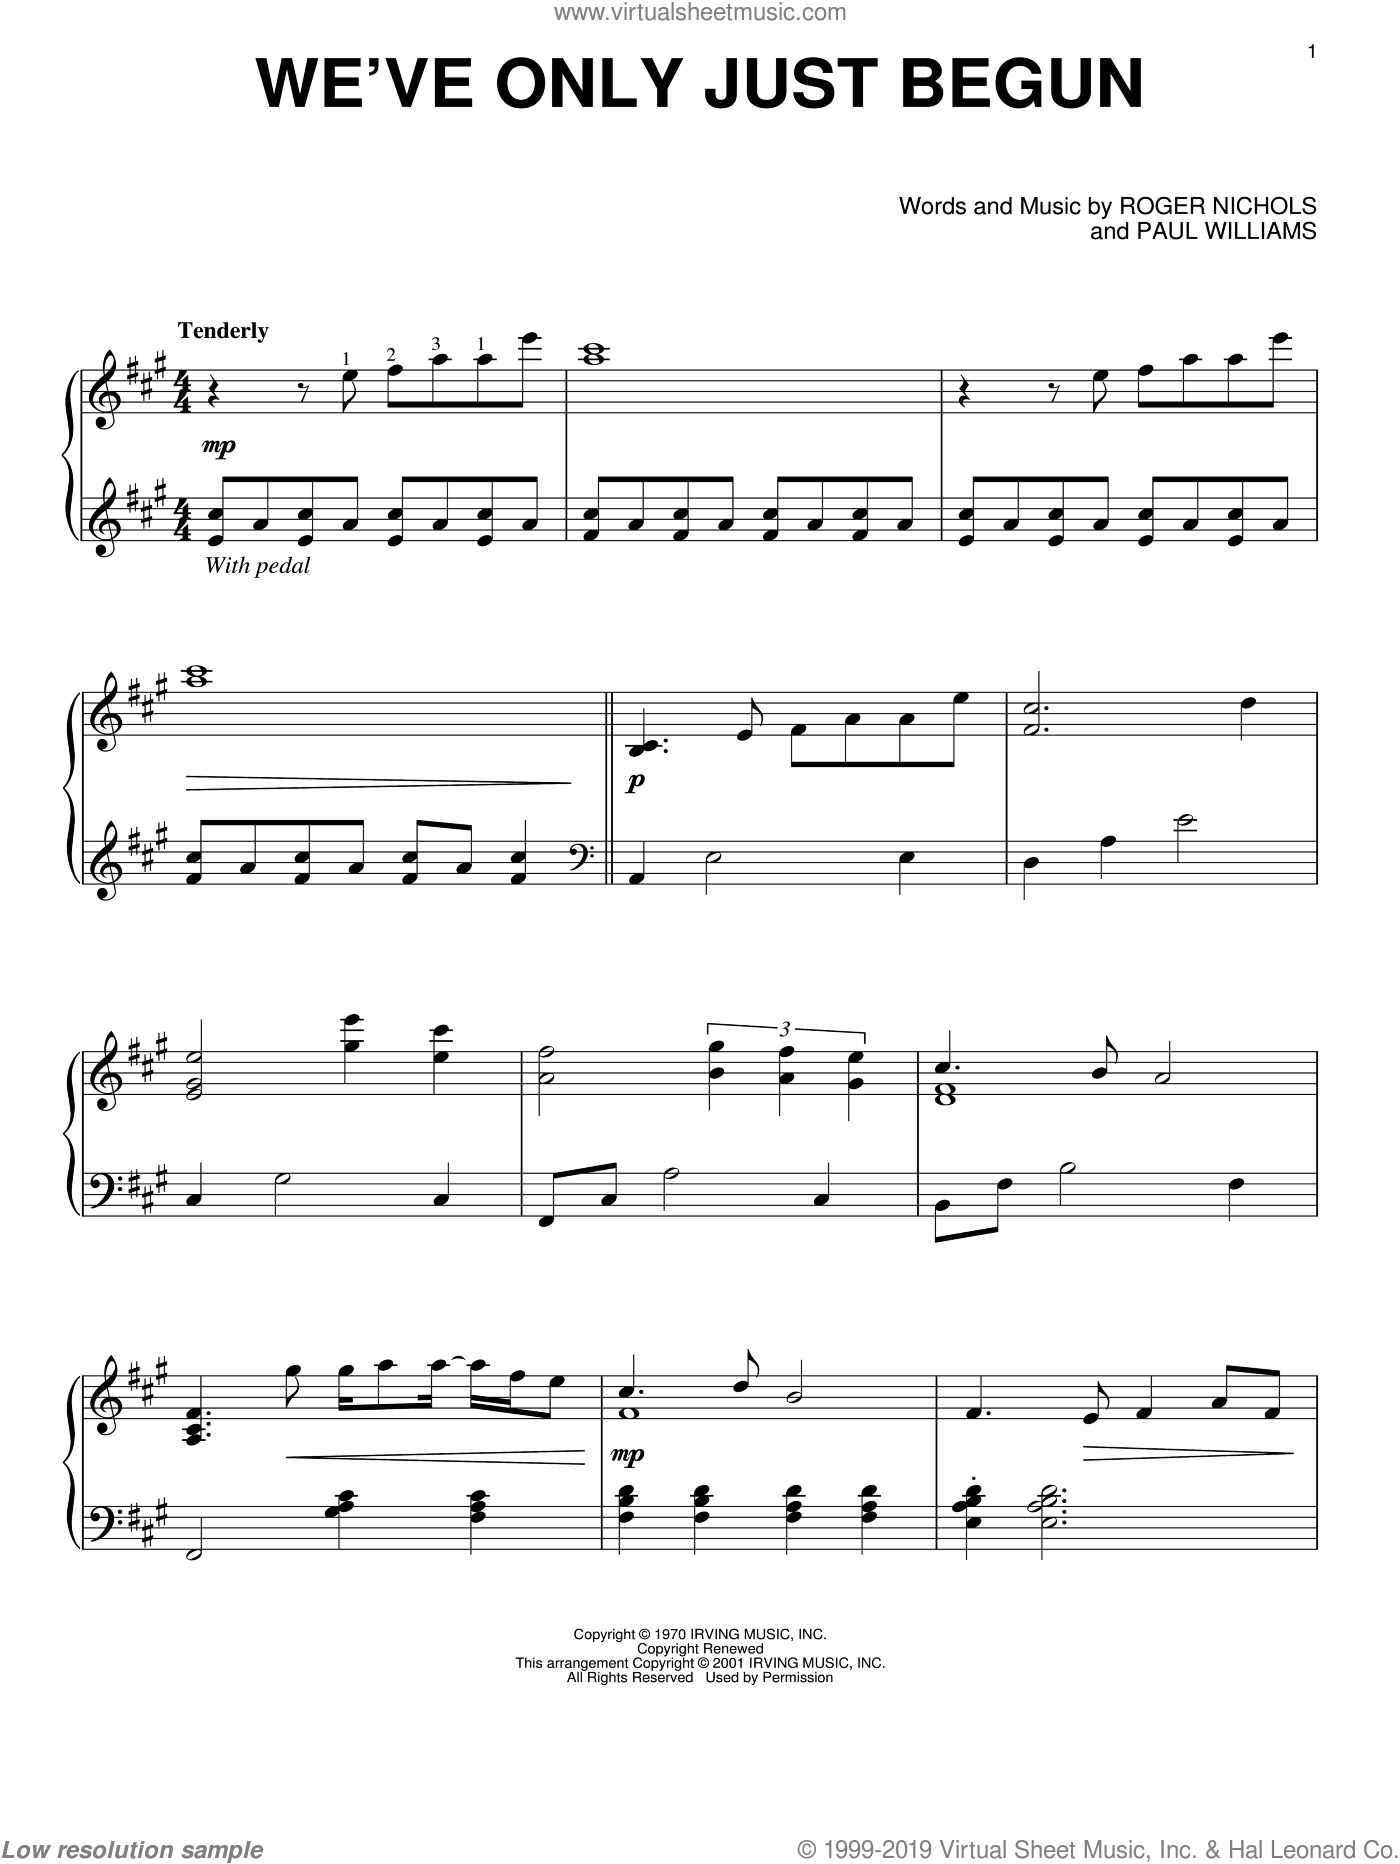 We've Only Just Begun sheet music for piano solo by Roger Nichols, Carpenters and Paul Williams